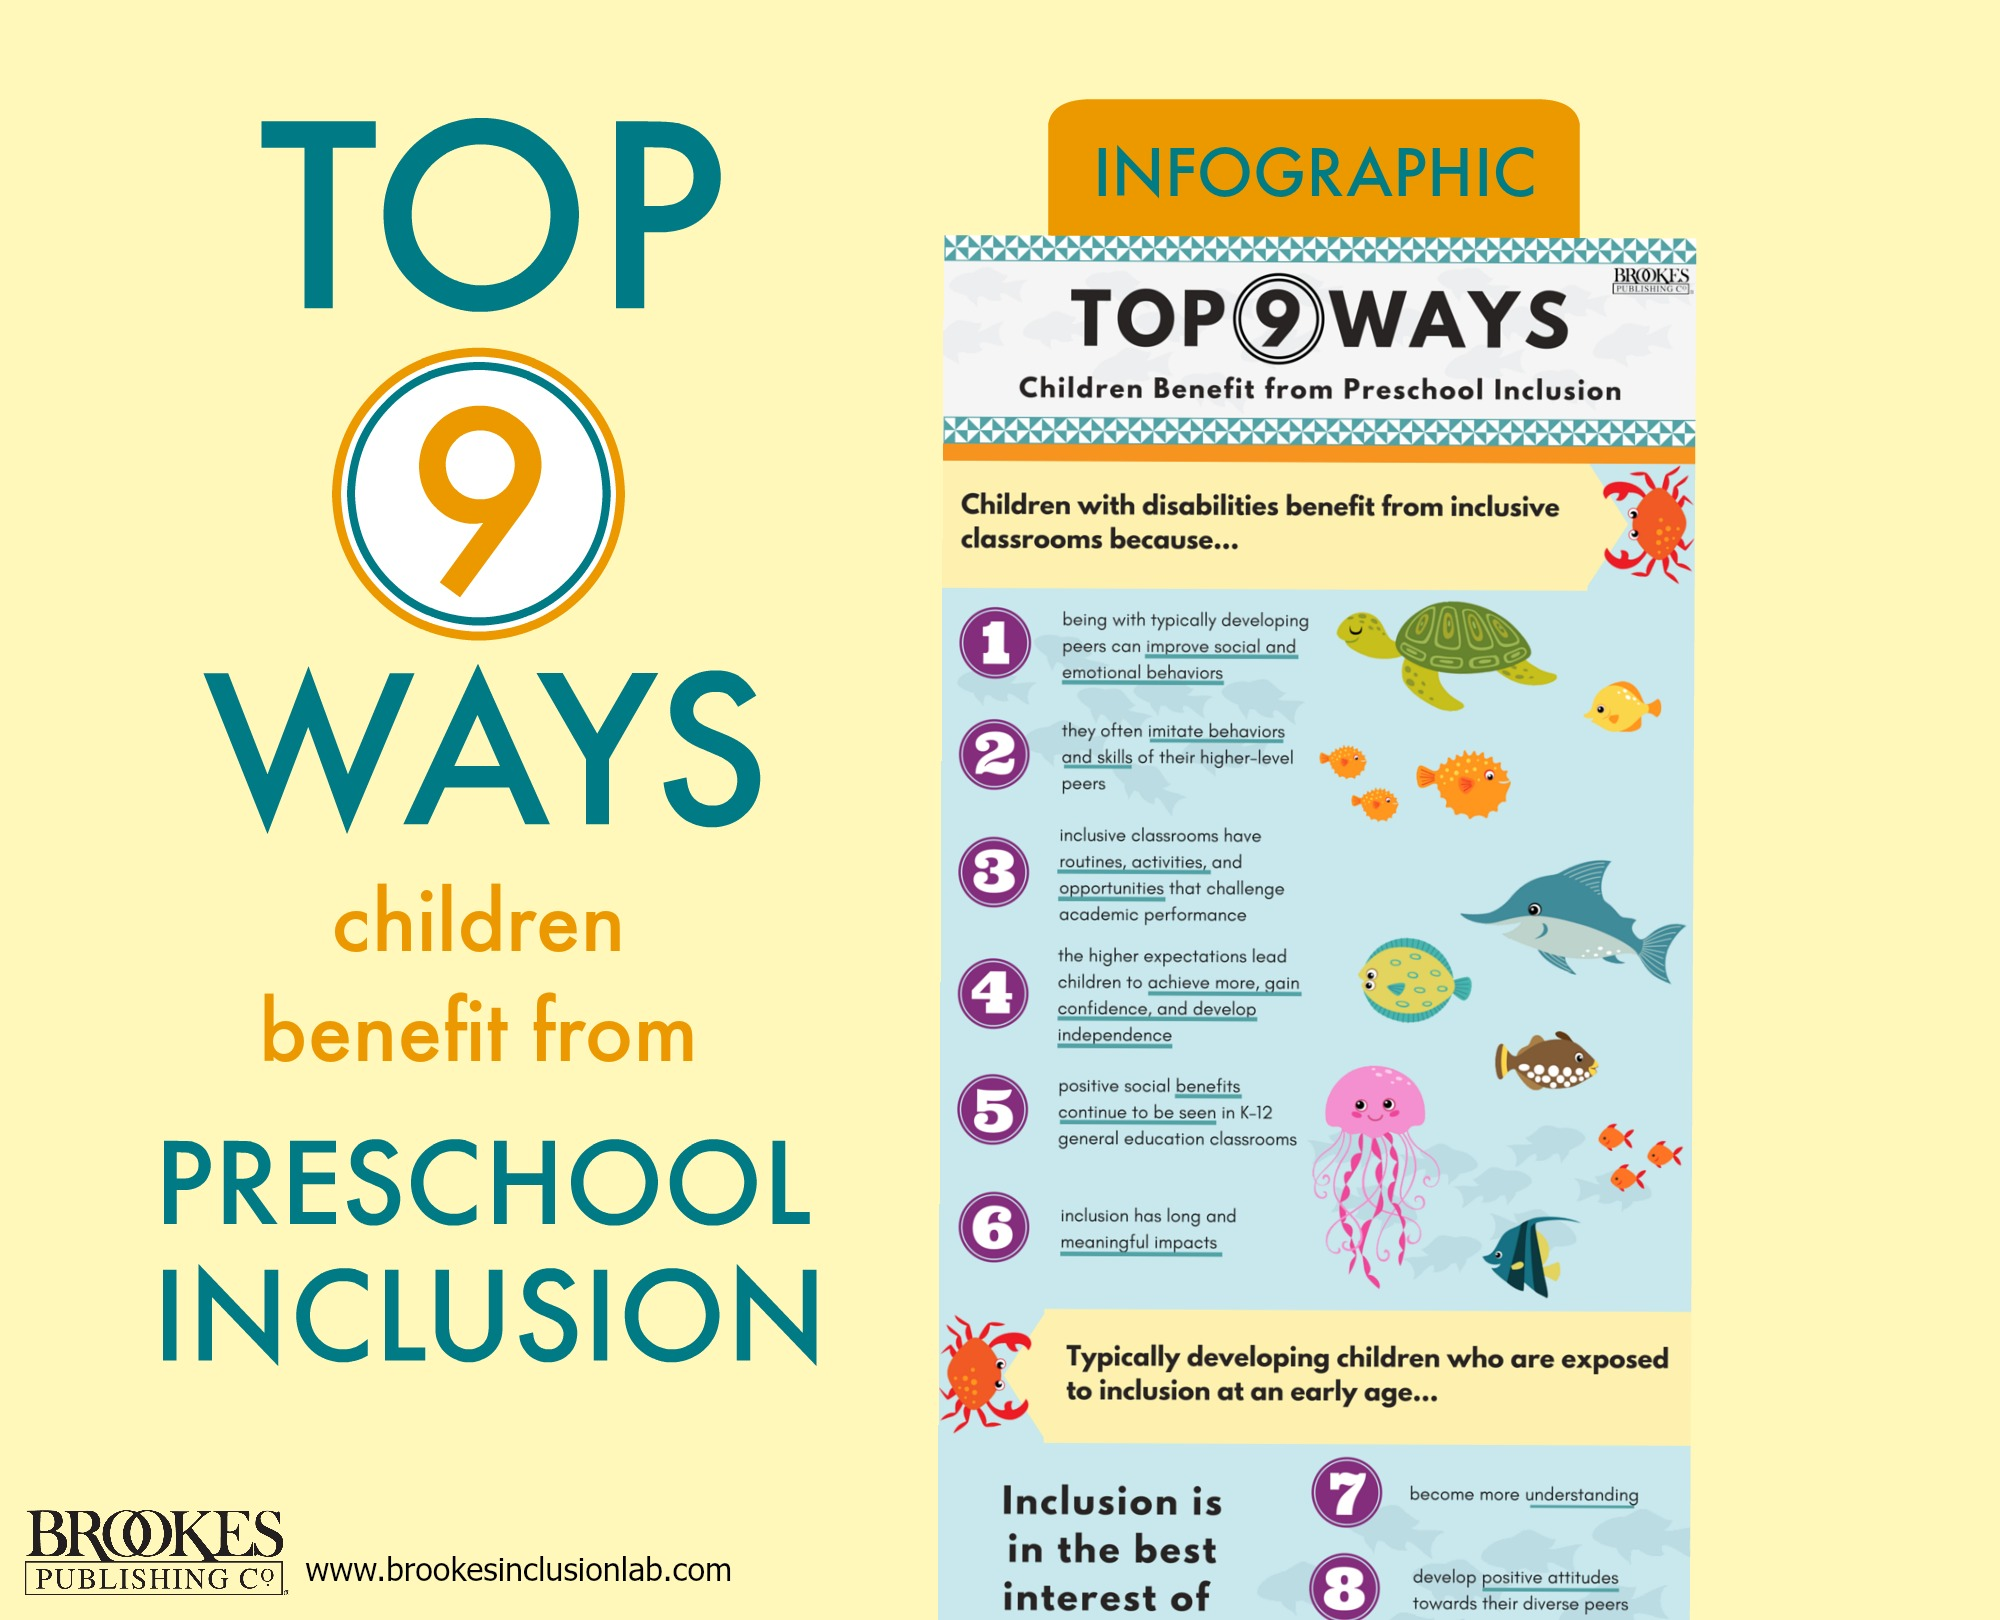 Top 9 Ways Children Benefit from Preschool Inclusion